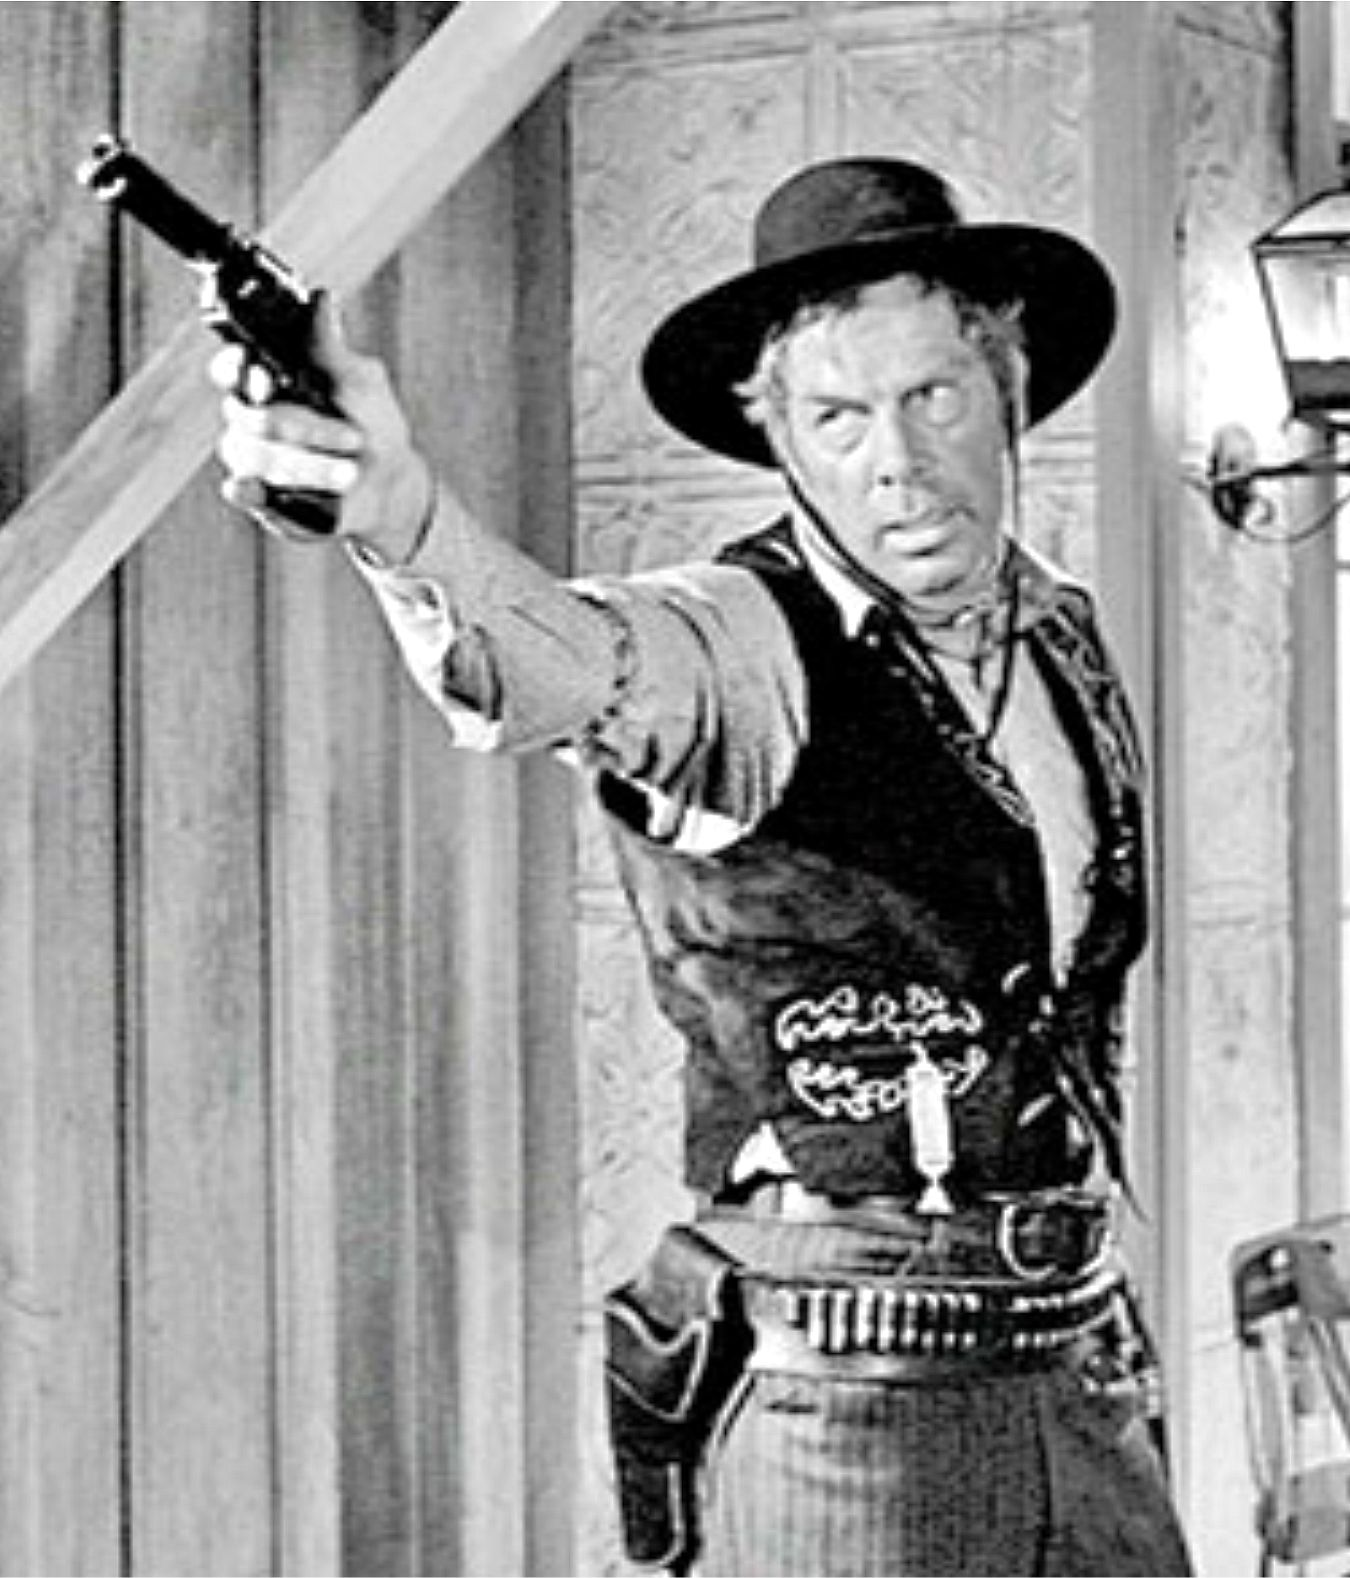 Marvin's Icon … The Man Who Shot Liberty Valance